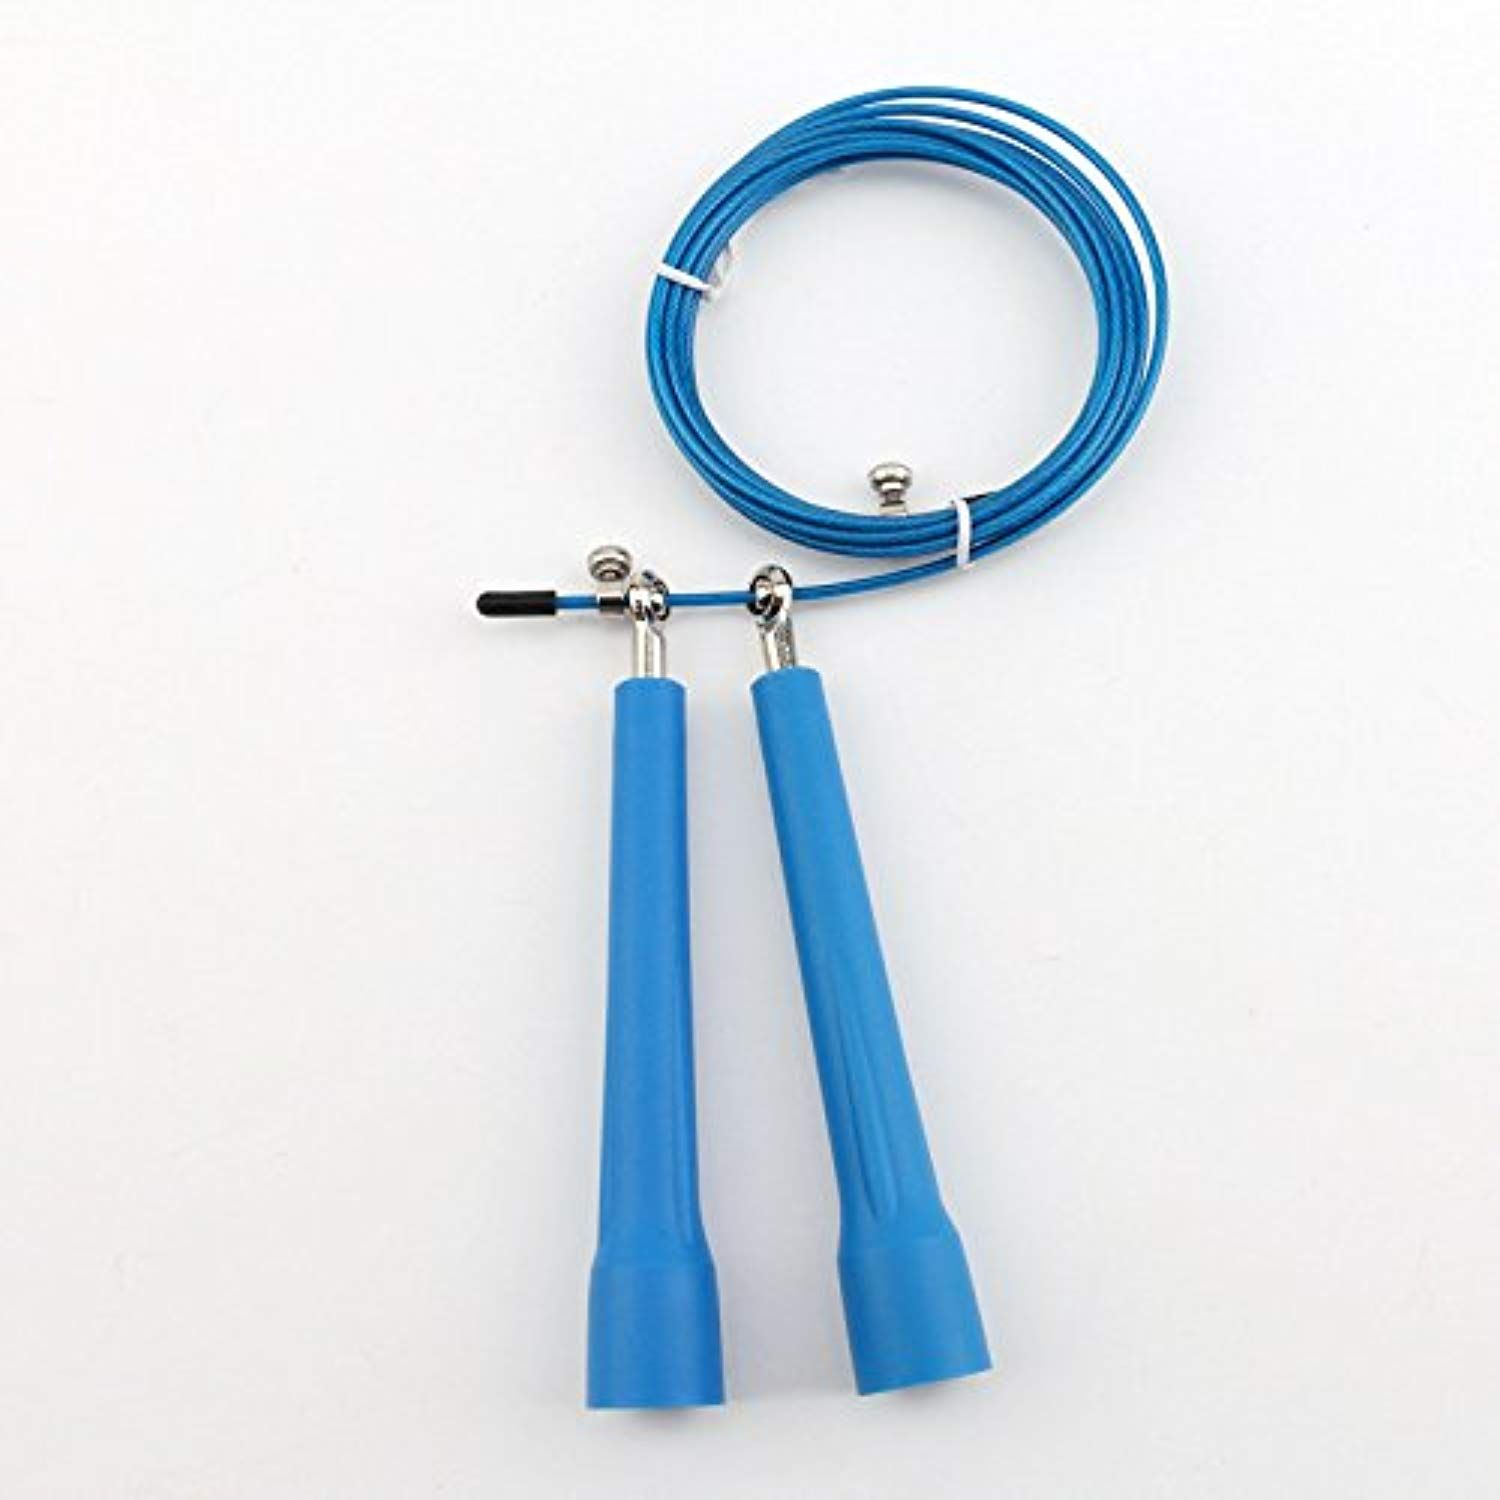 Yongtong Jump Rope Plastic Fitness Jumprope With Adjustable 11 Foot Cable Features Ball Bearing System Best Pvc Viny Jump Rope Pvc Vinyl Workout Accessories